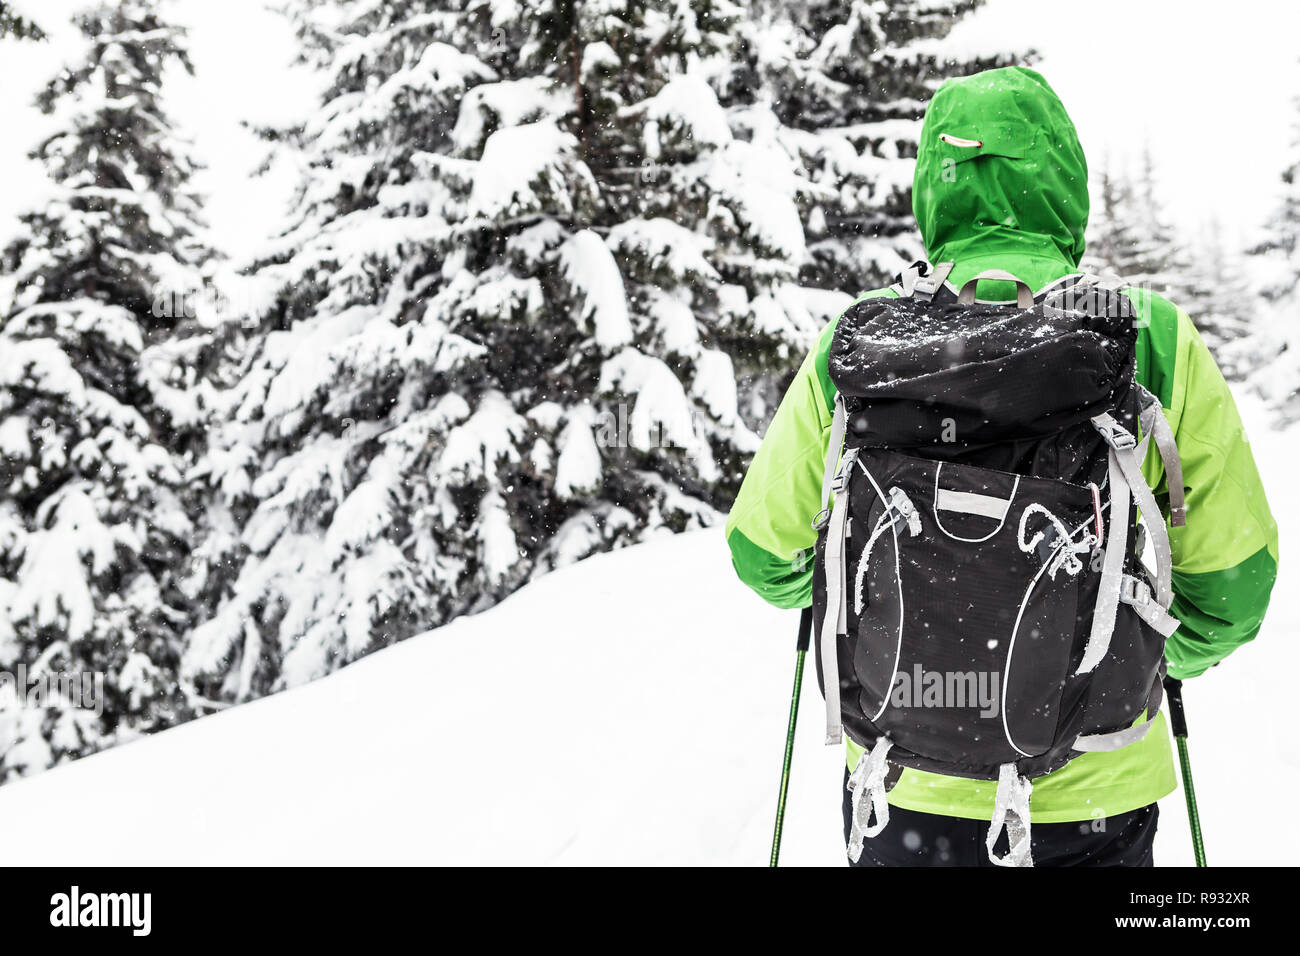 Winter trek in white snowy forest. Man hiking in winter woods. Travel and healthy lifestyle outdoors in beautiful nature. - Stock Image